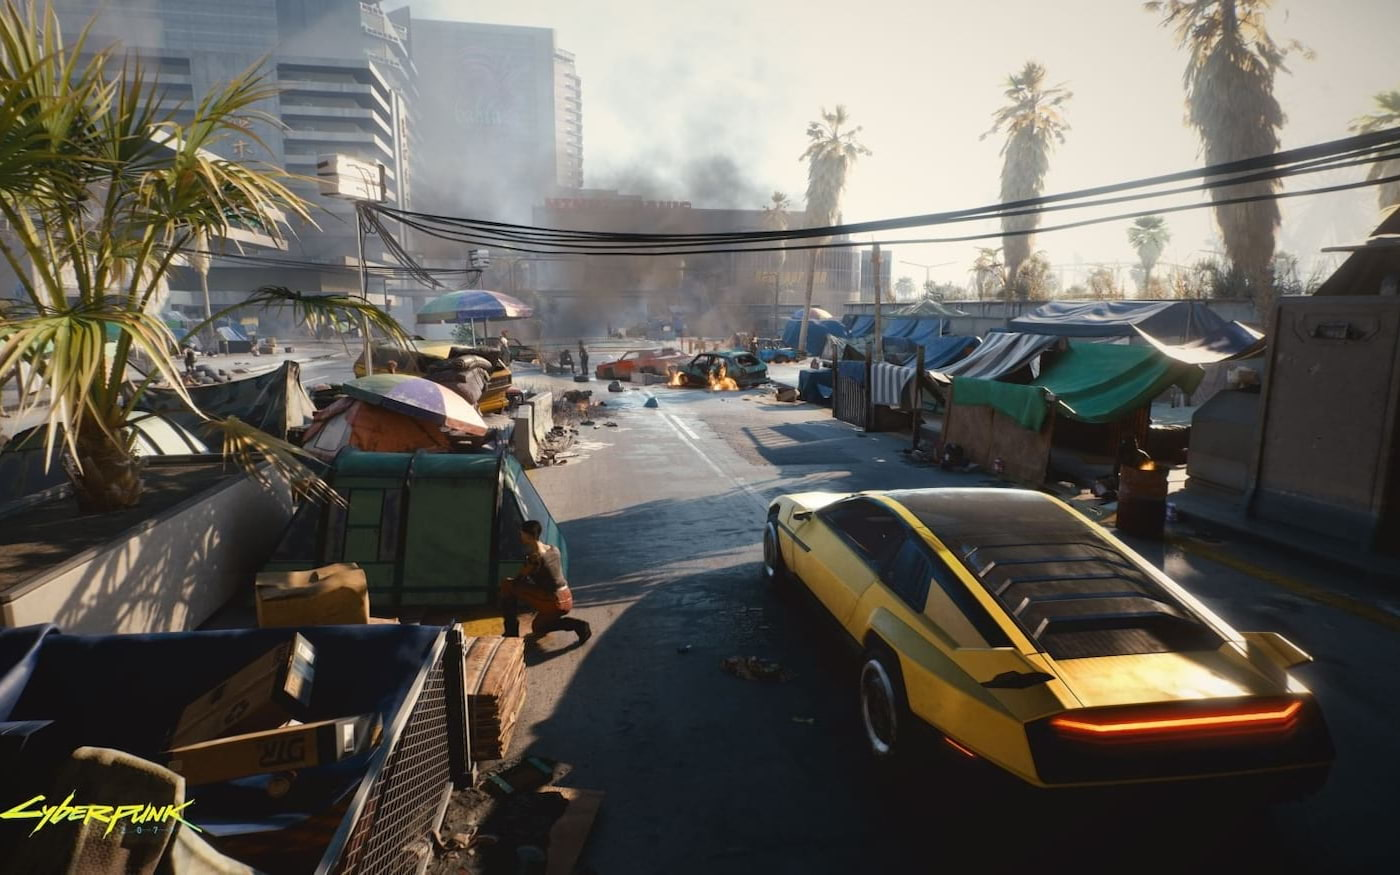 CD Projekt Red confirma que Cyberpunk 2077 terá multiplayer